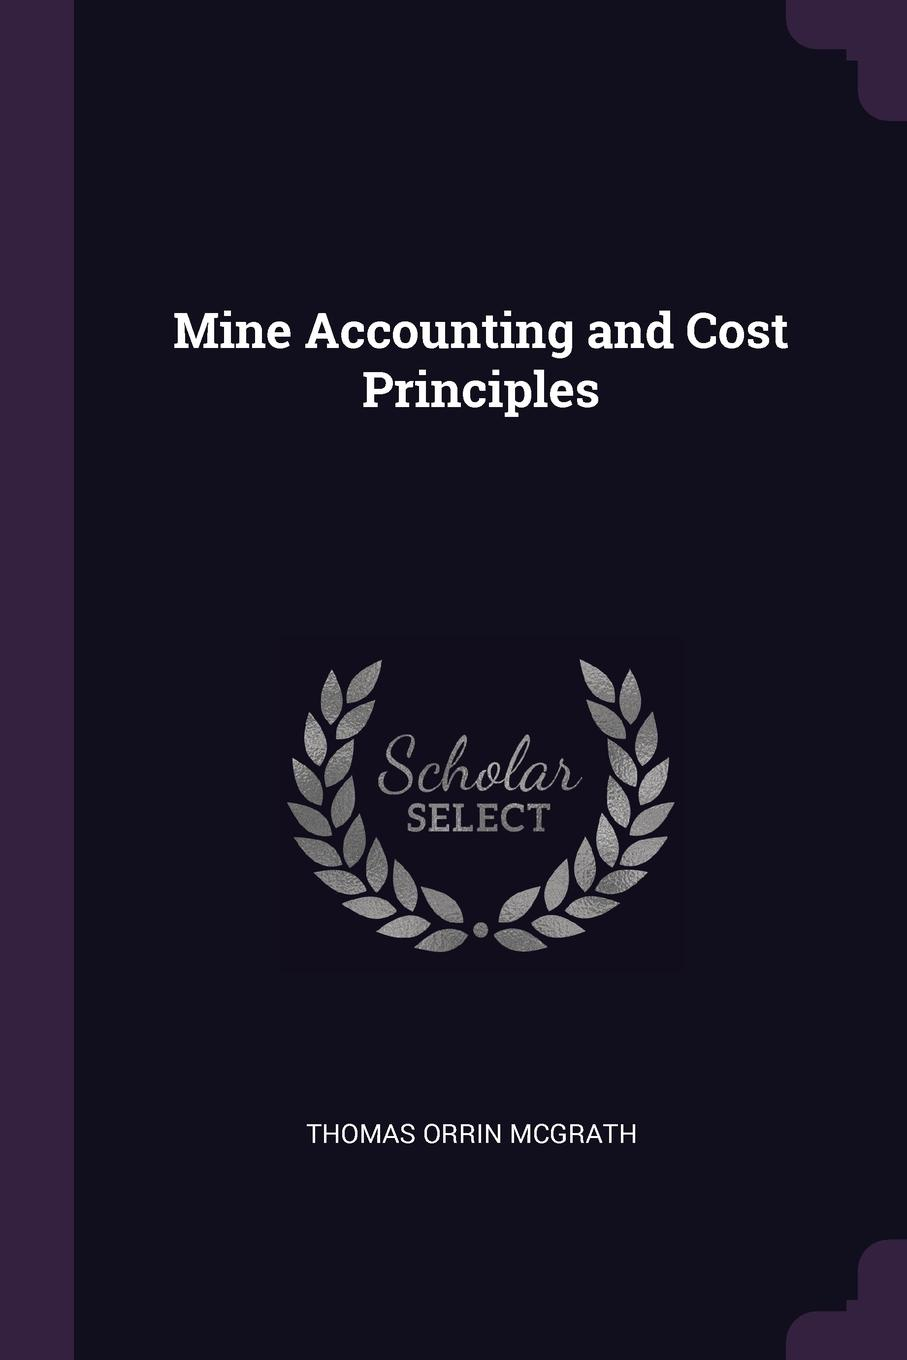 Thomas Orrin McGrath. Mine Accounting and Cost Principles